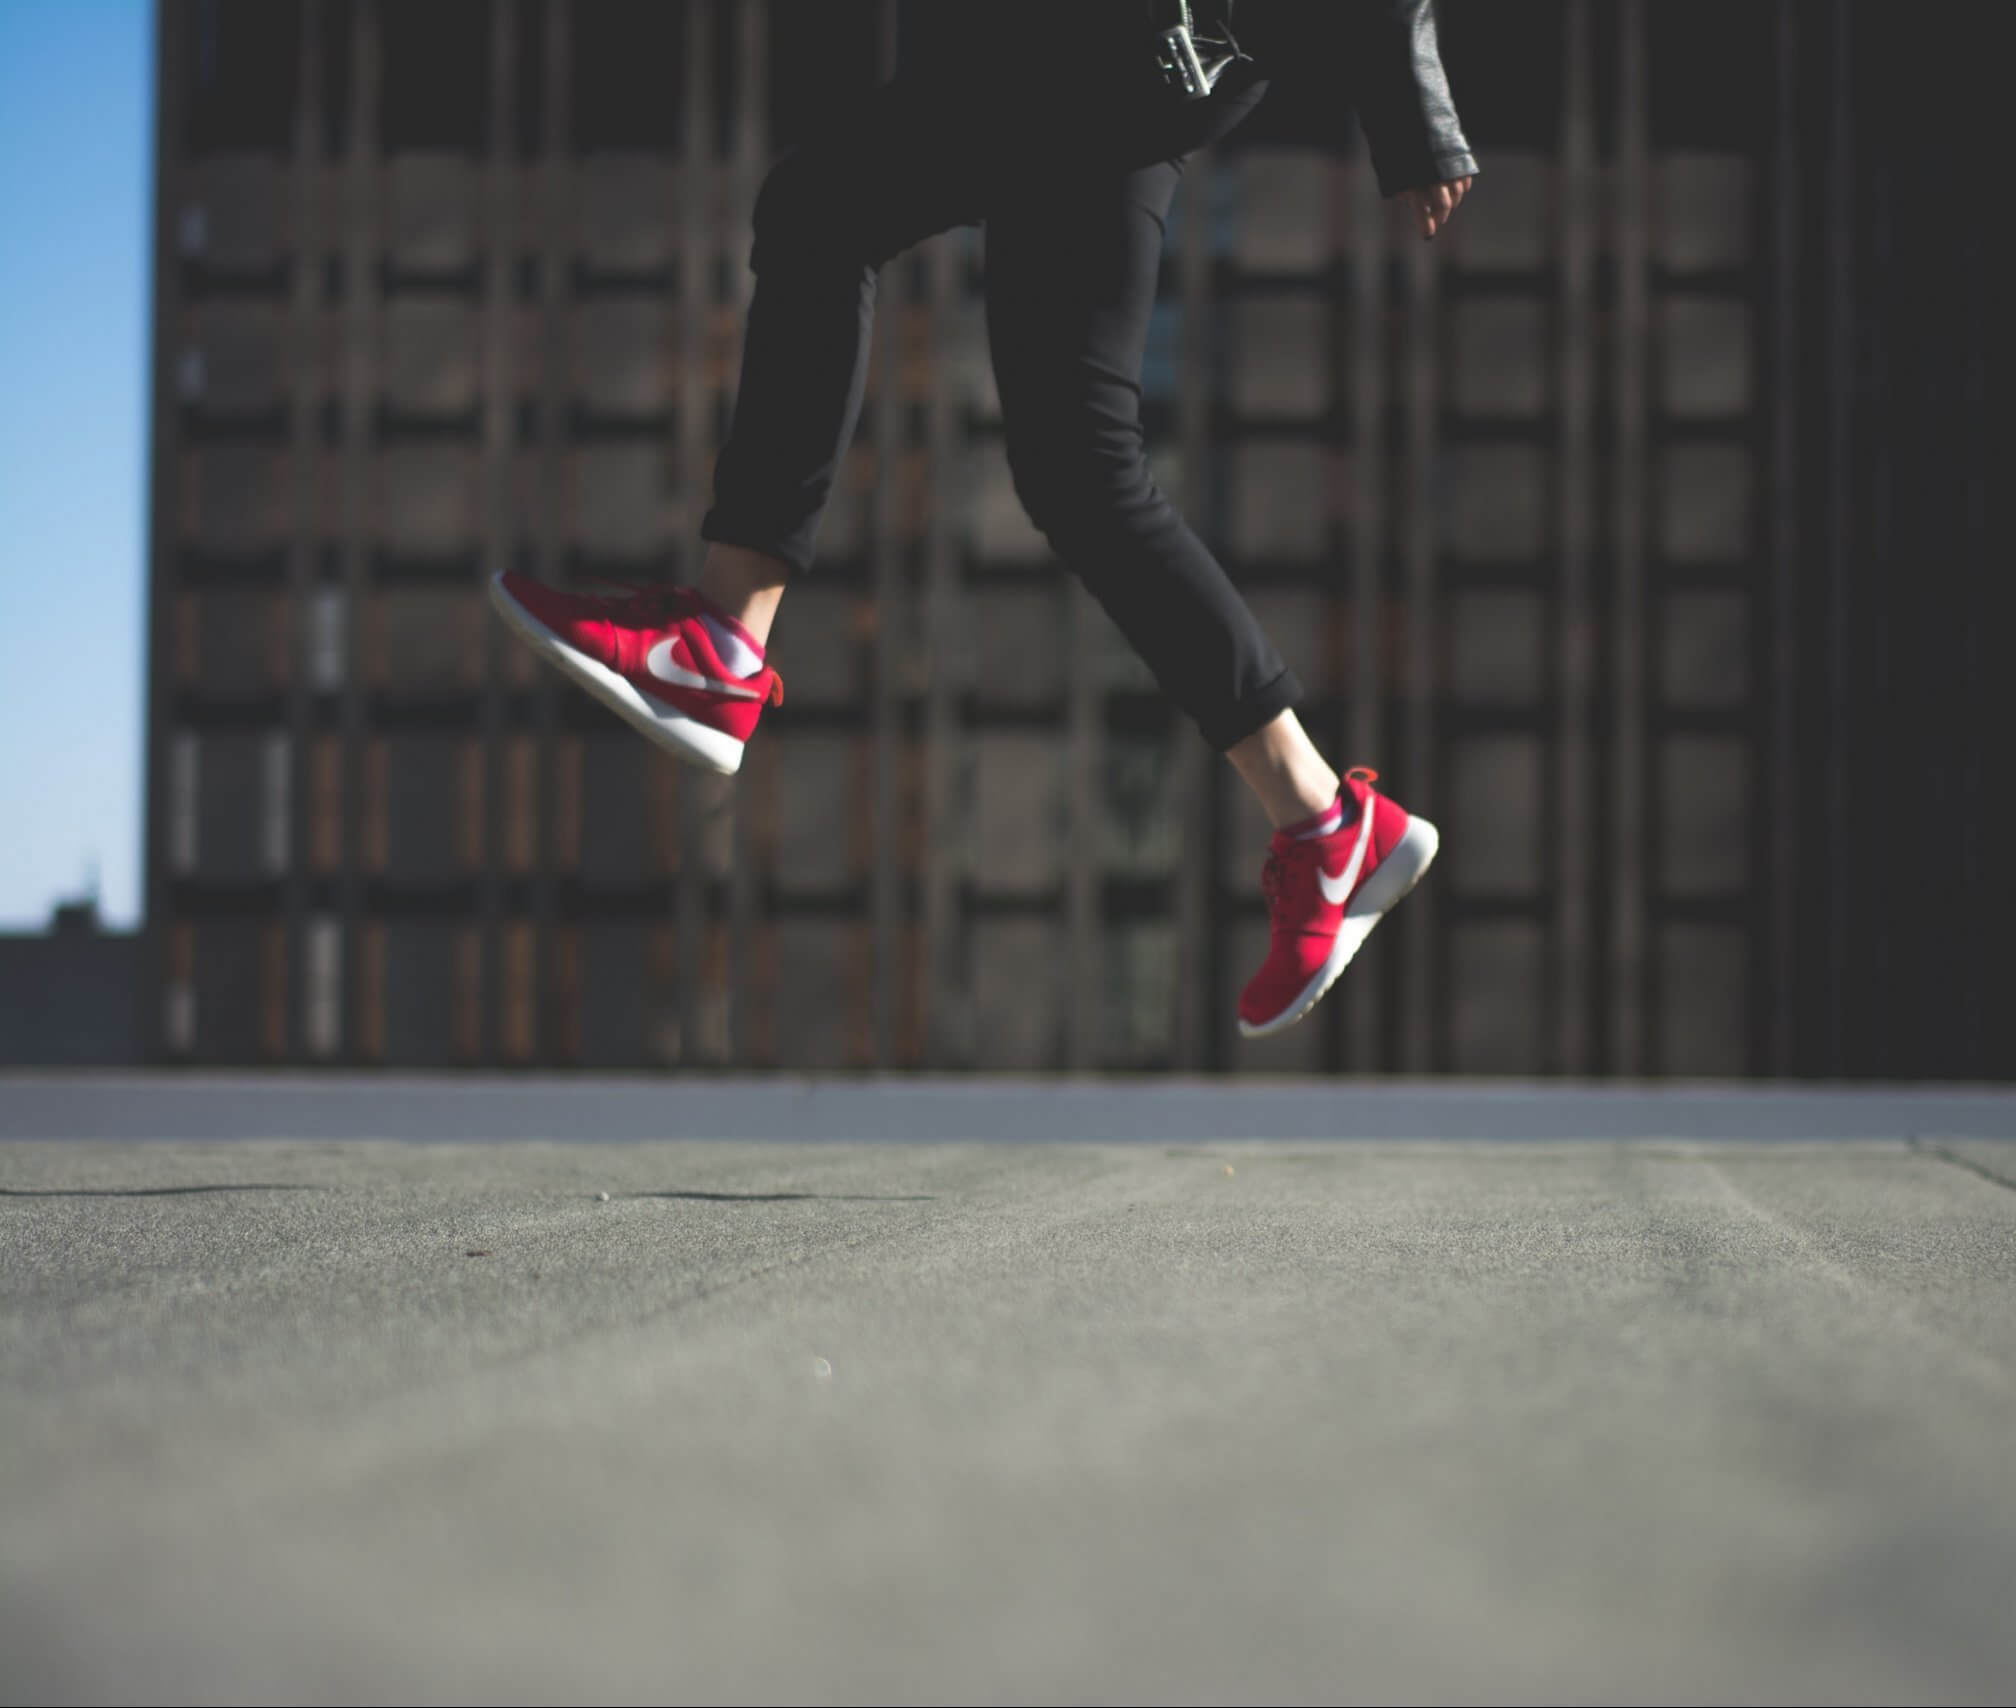 Jumping with Nike Shoes